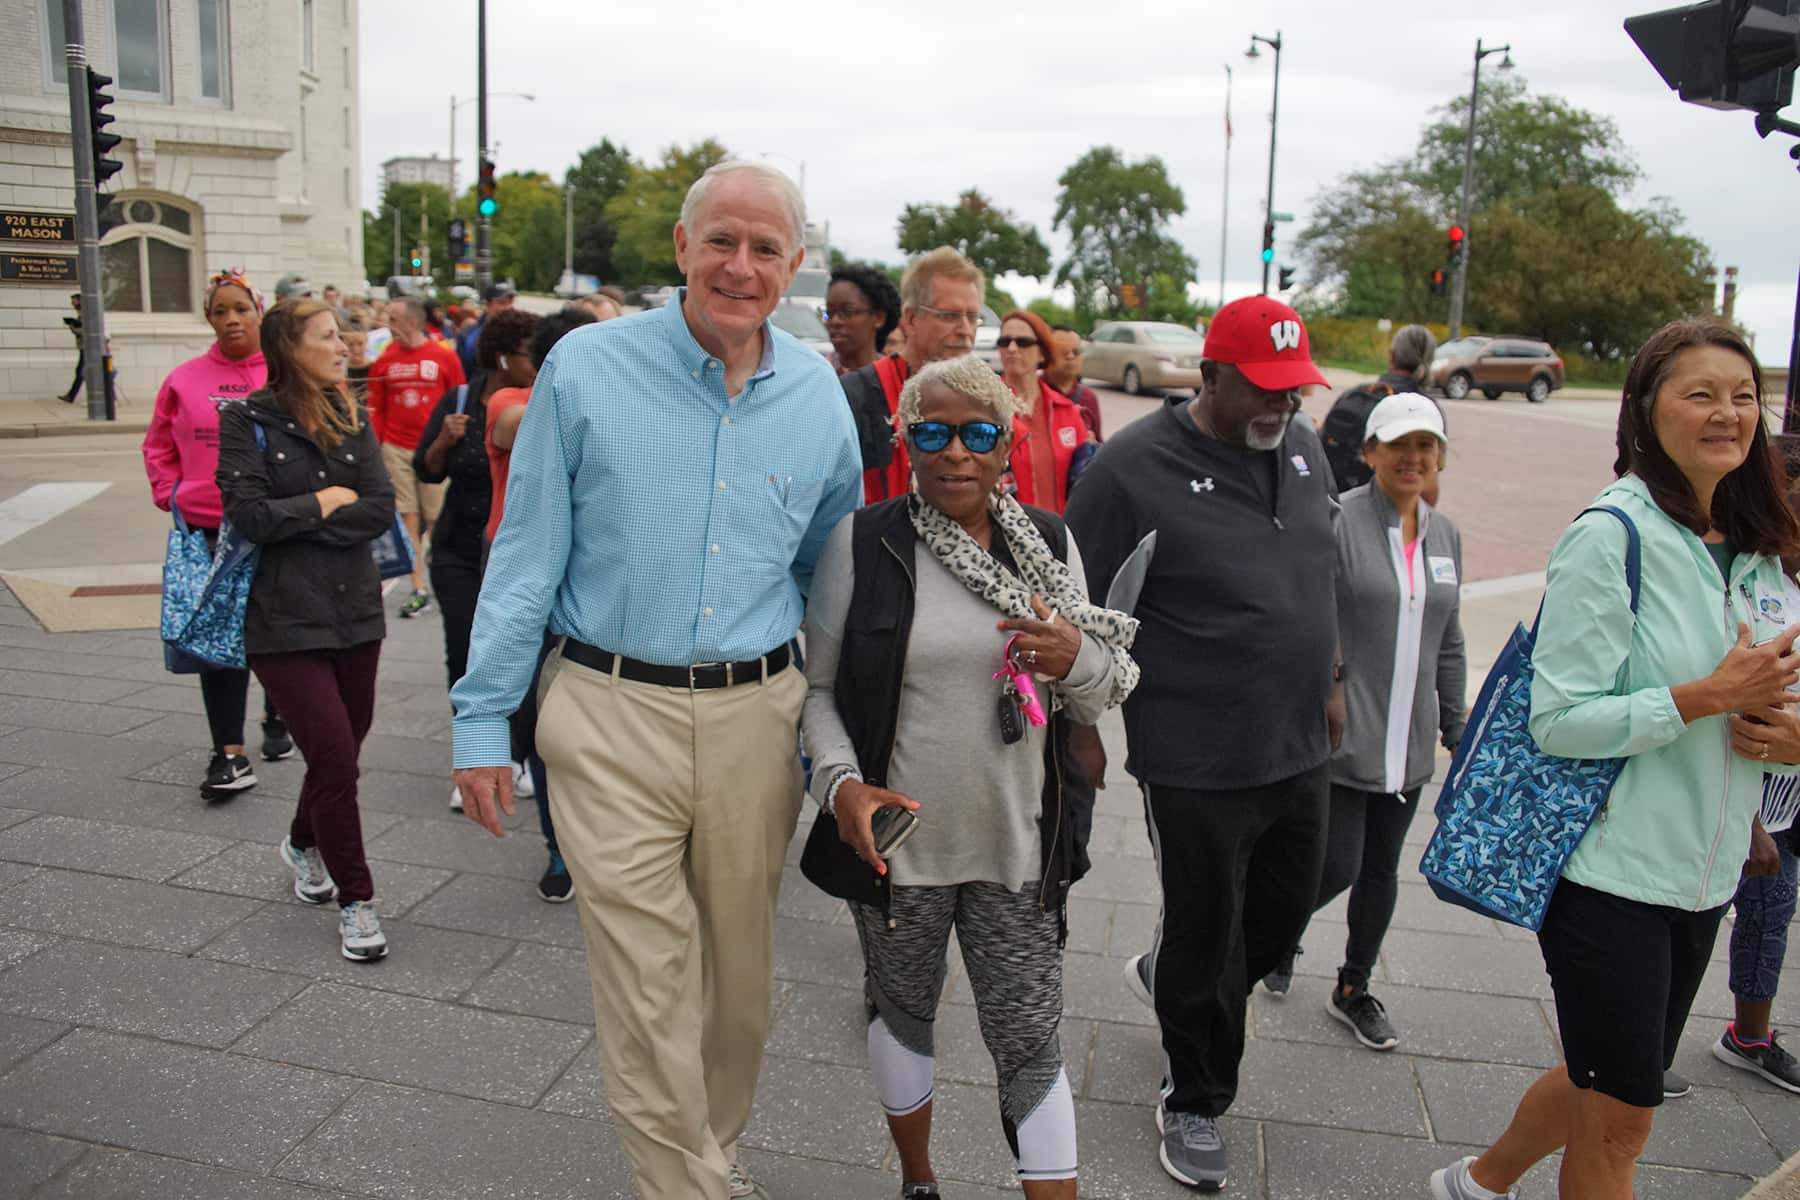 03_b090619_mayorlastwalk100_1043